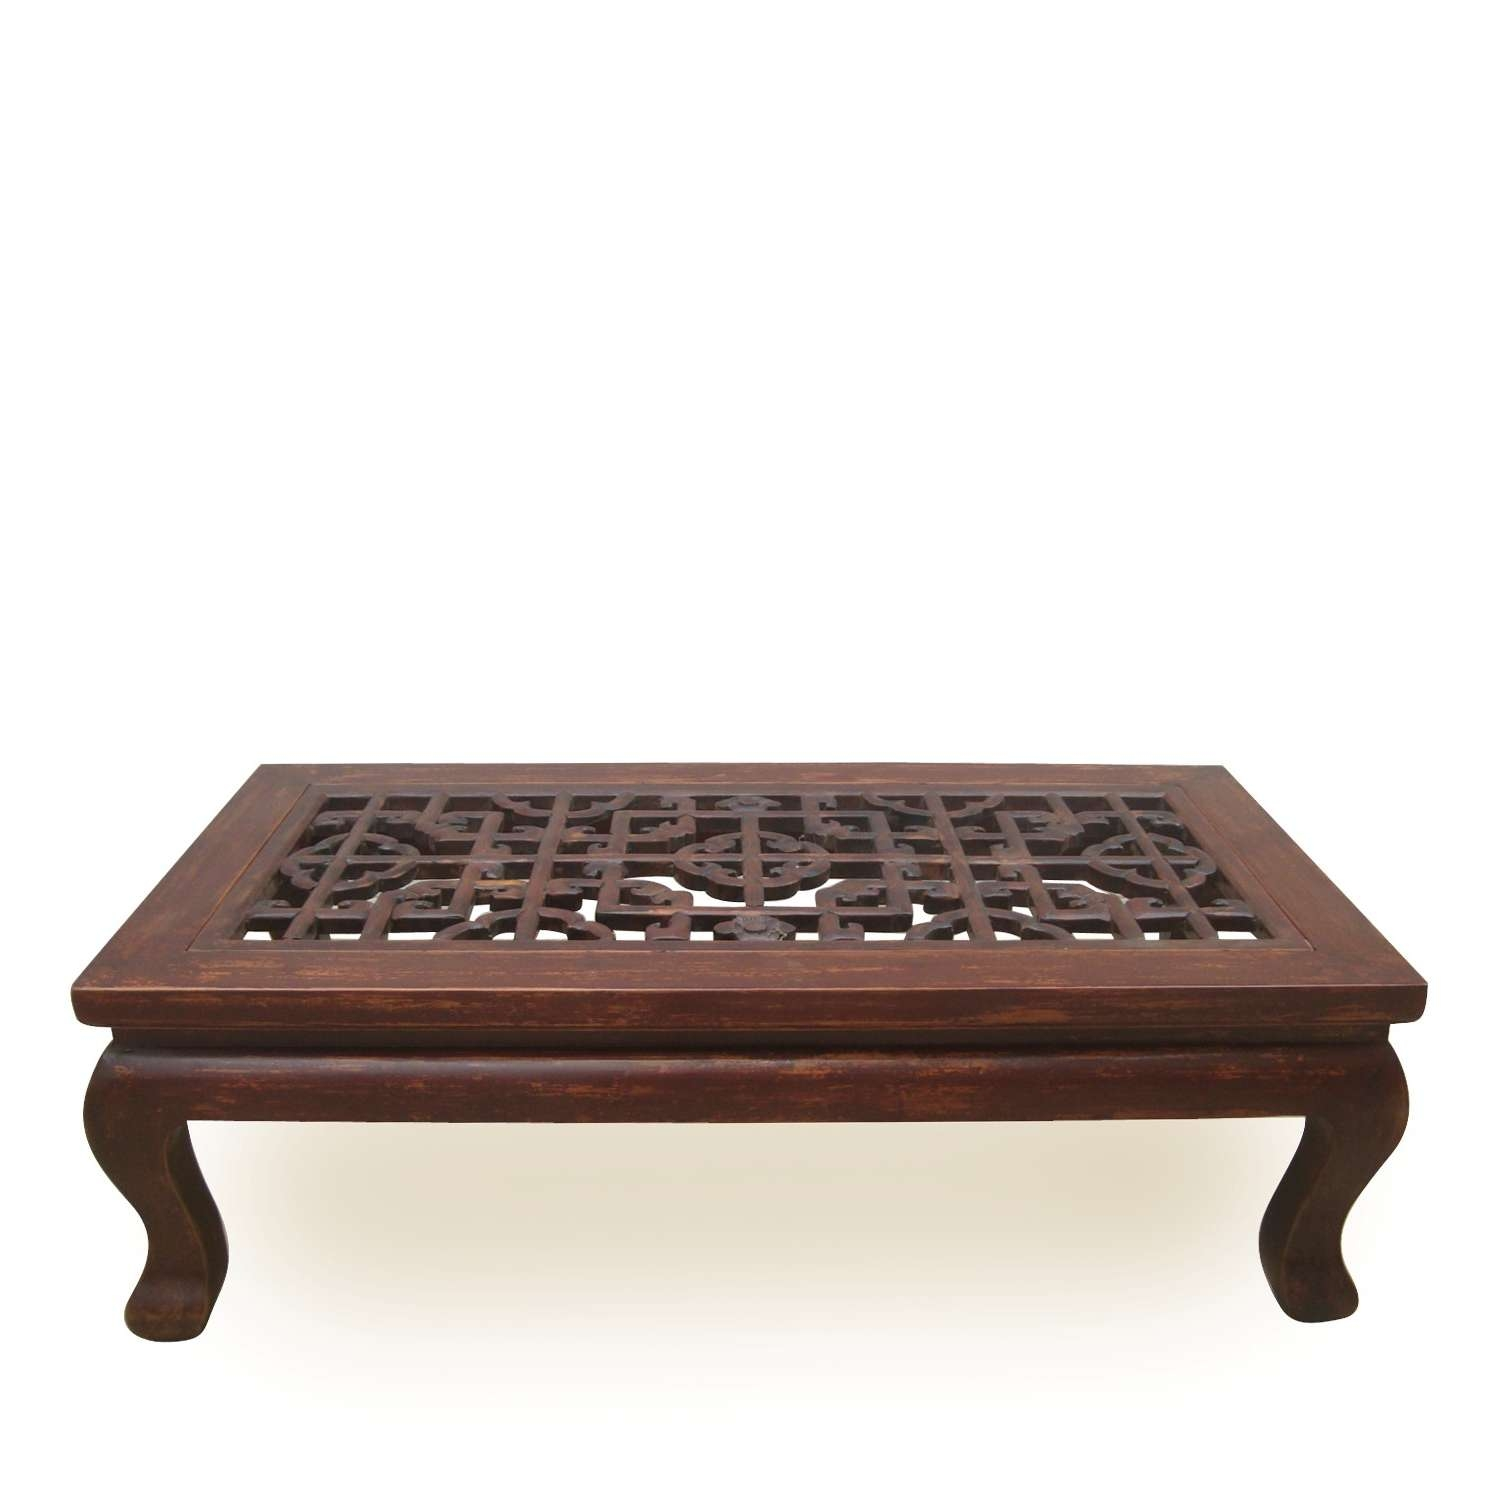 Furniture Chinese Coffee Table Design Ideas High Resolution For Favorite Chinese Coffee Tables (View 15 of 20)